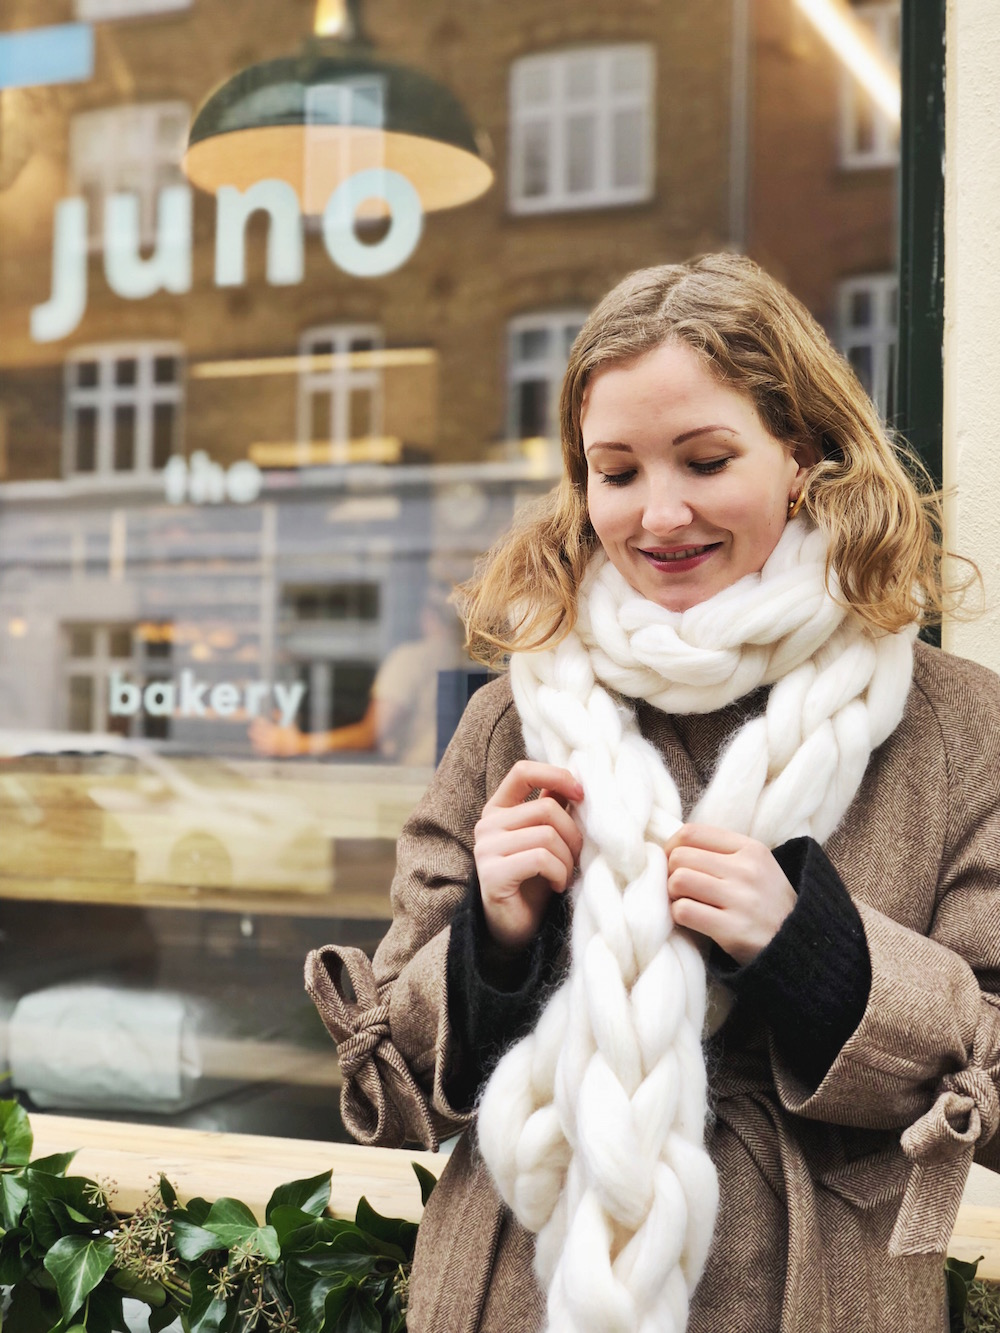 Juno The Bakery Denmark